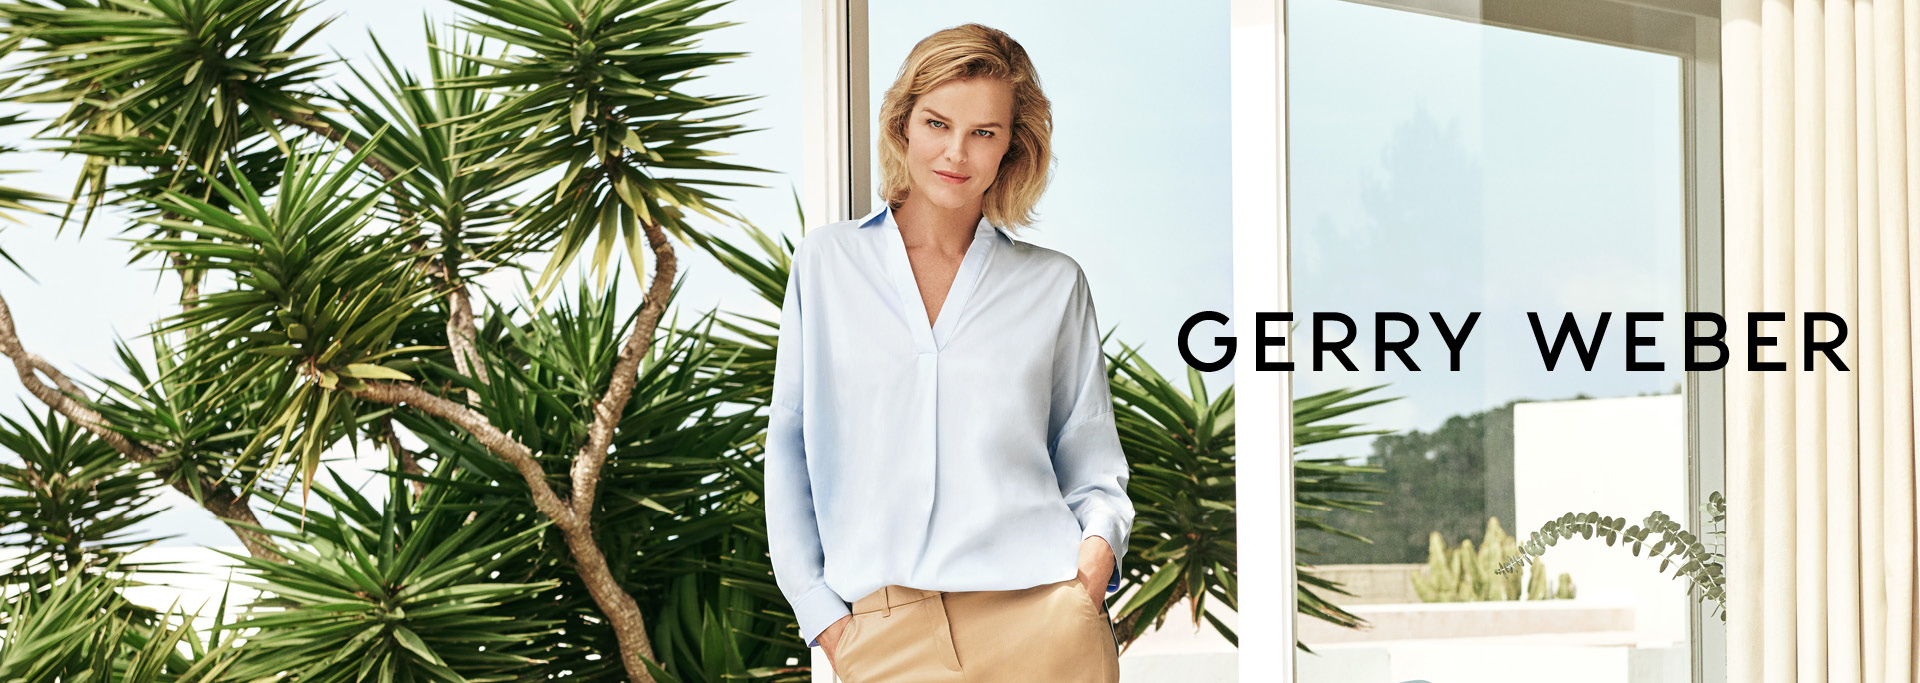 436c79cd85cb29 Gerry Weber - Shoppingglück